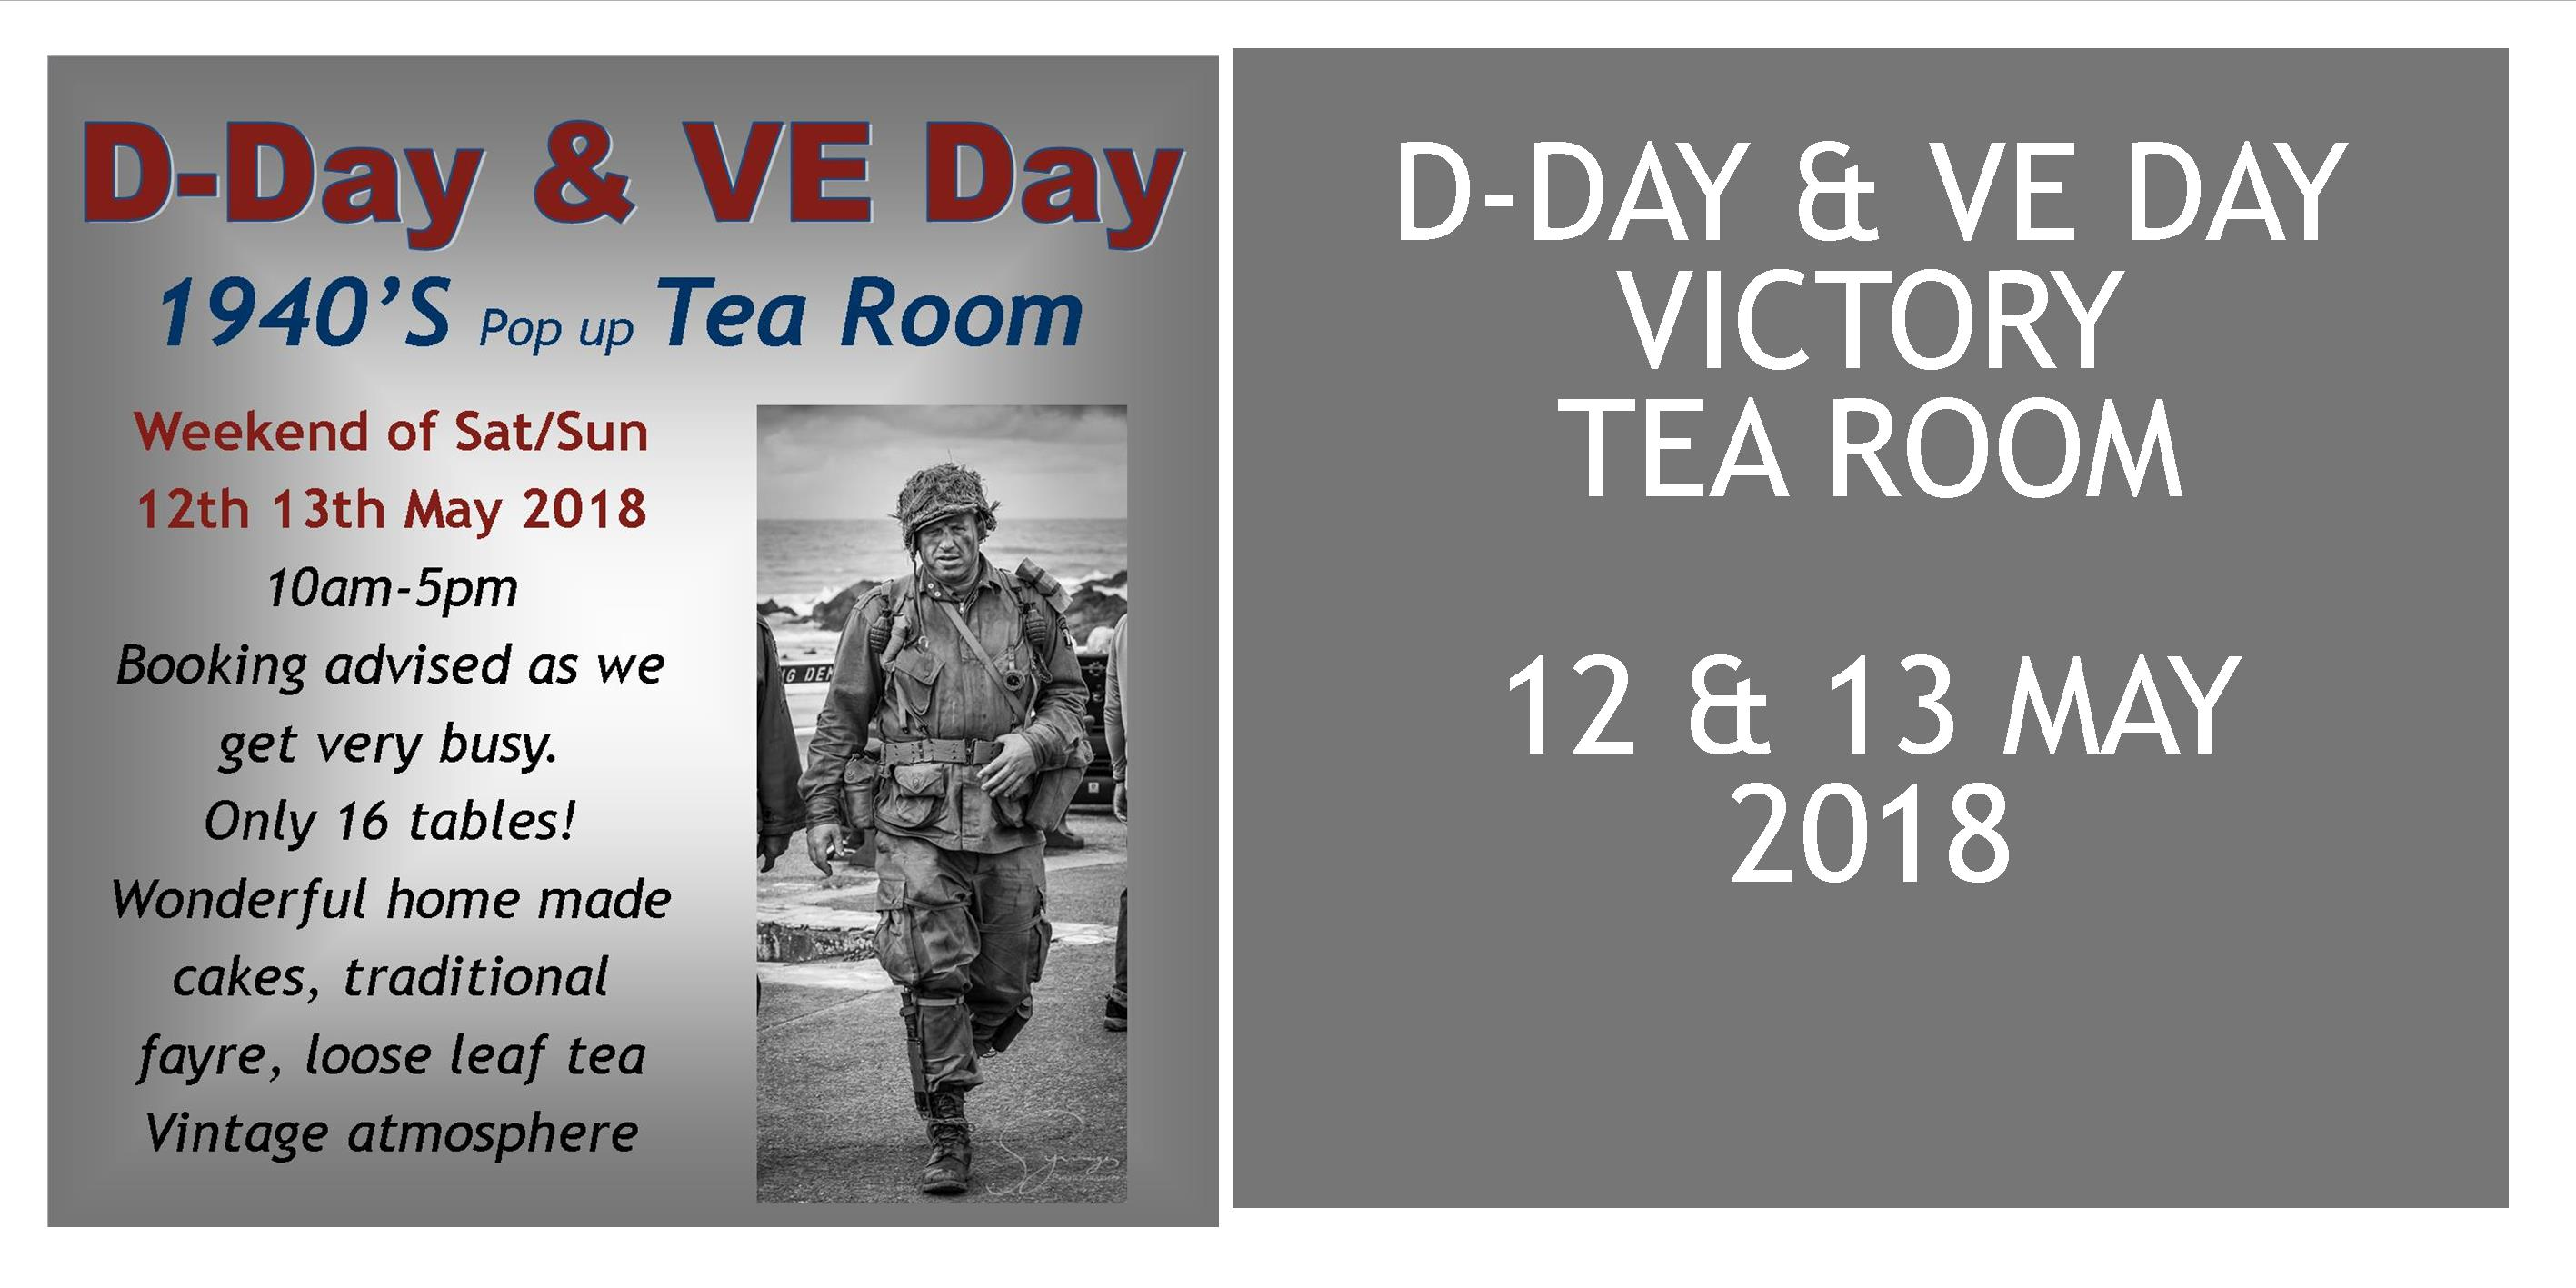 D Day Amp Ve Day 1940s Tea Room 12 Amp 13 May 2018 The